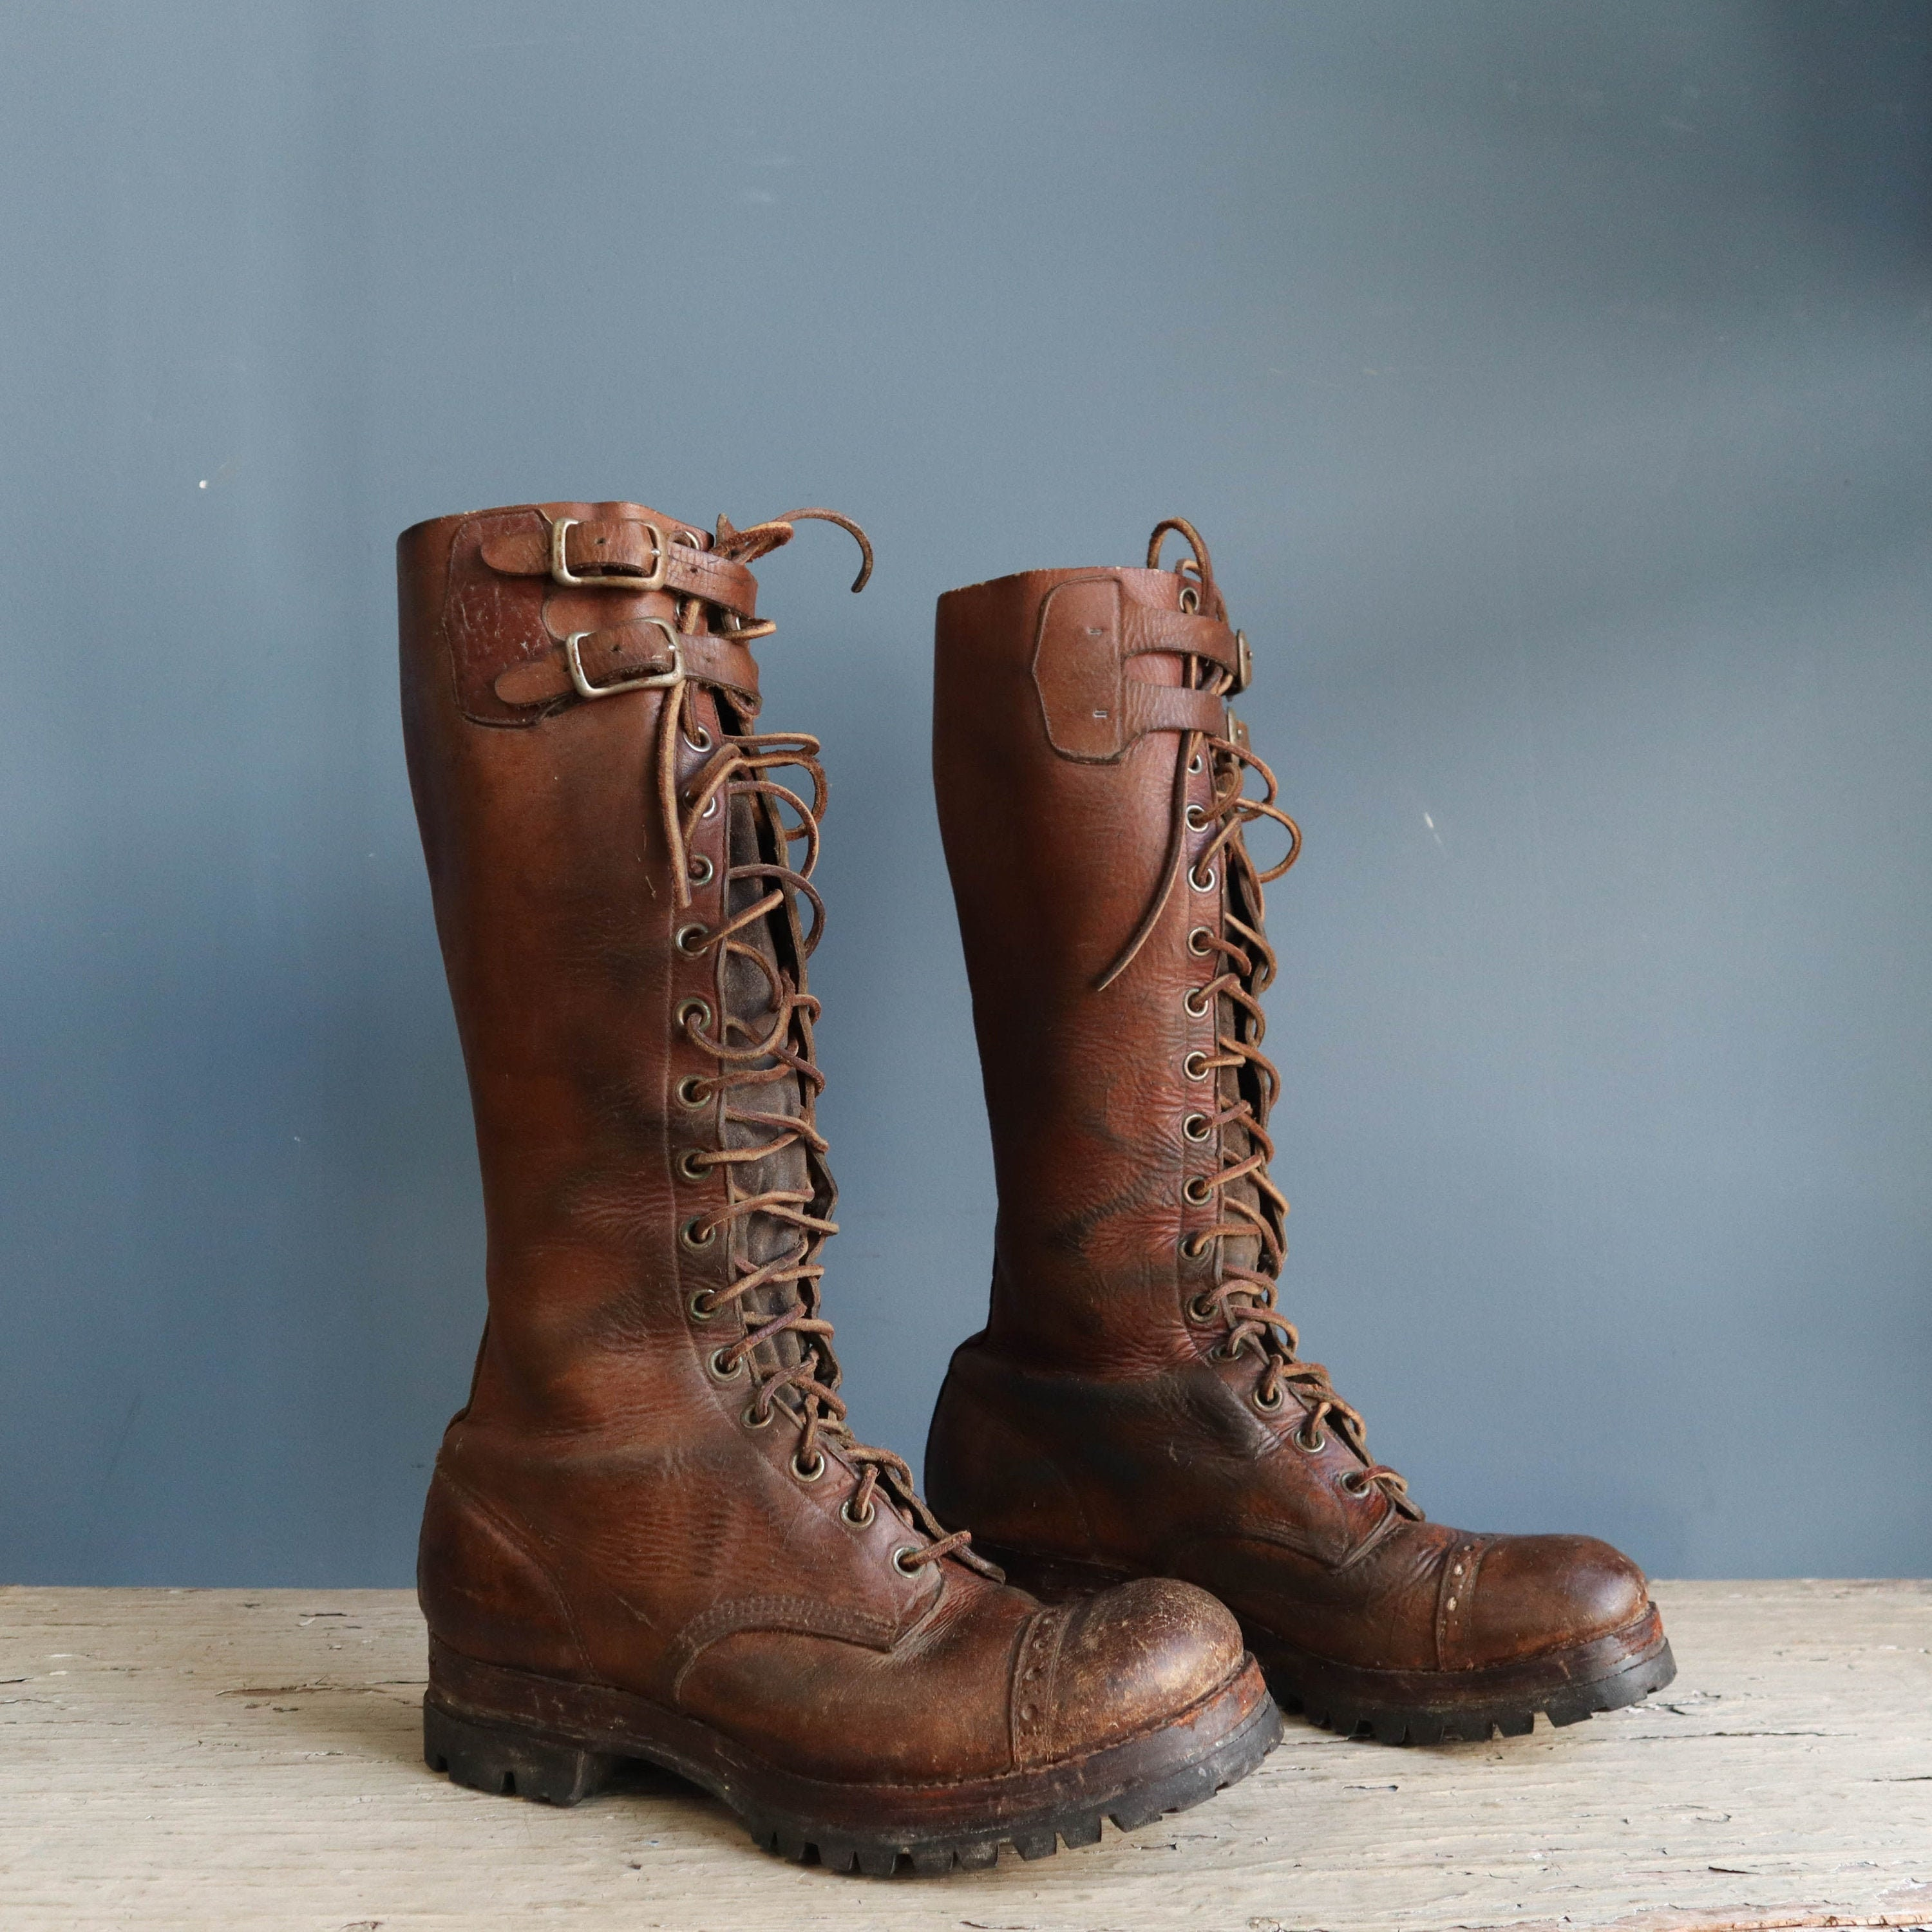 Vintage Tall Leather Lace-Up Boots